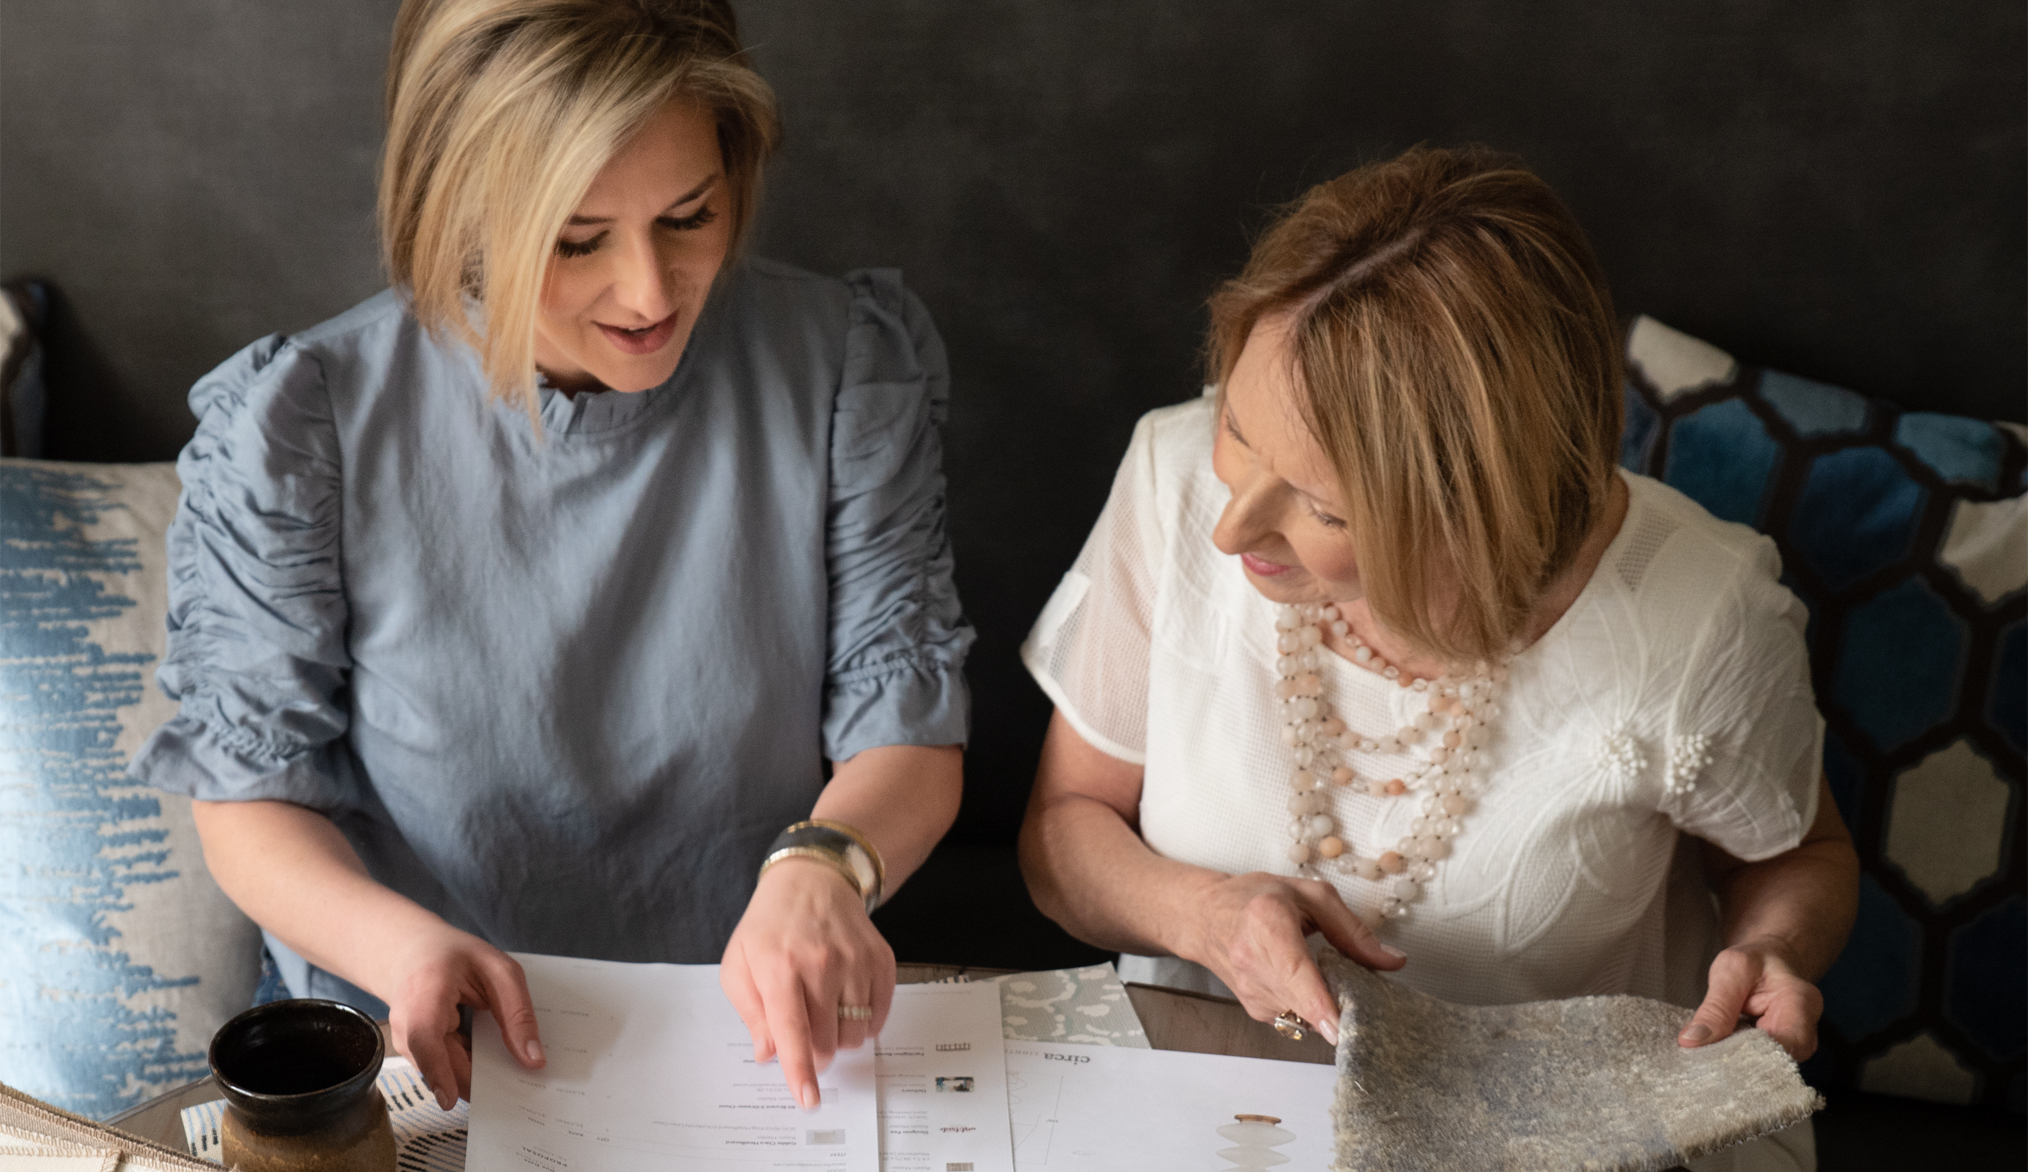 West Trade interior designers discussing a project